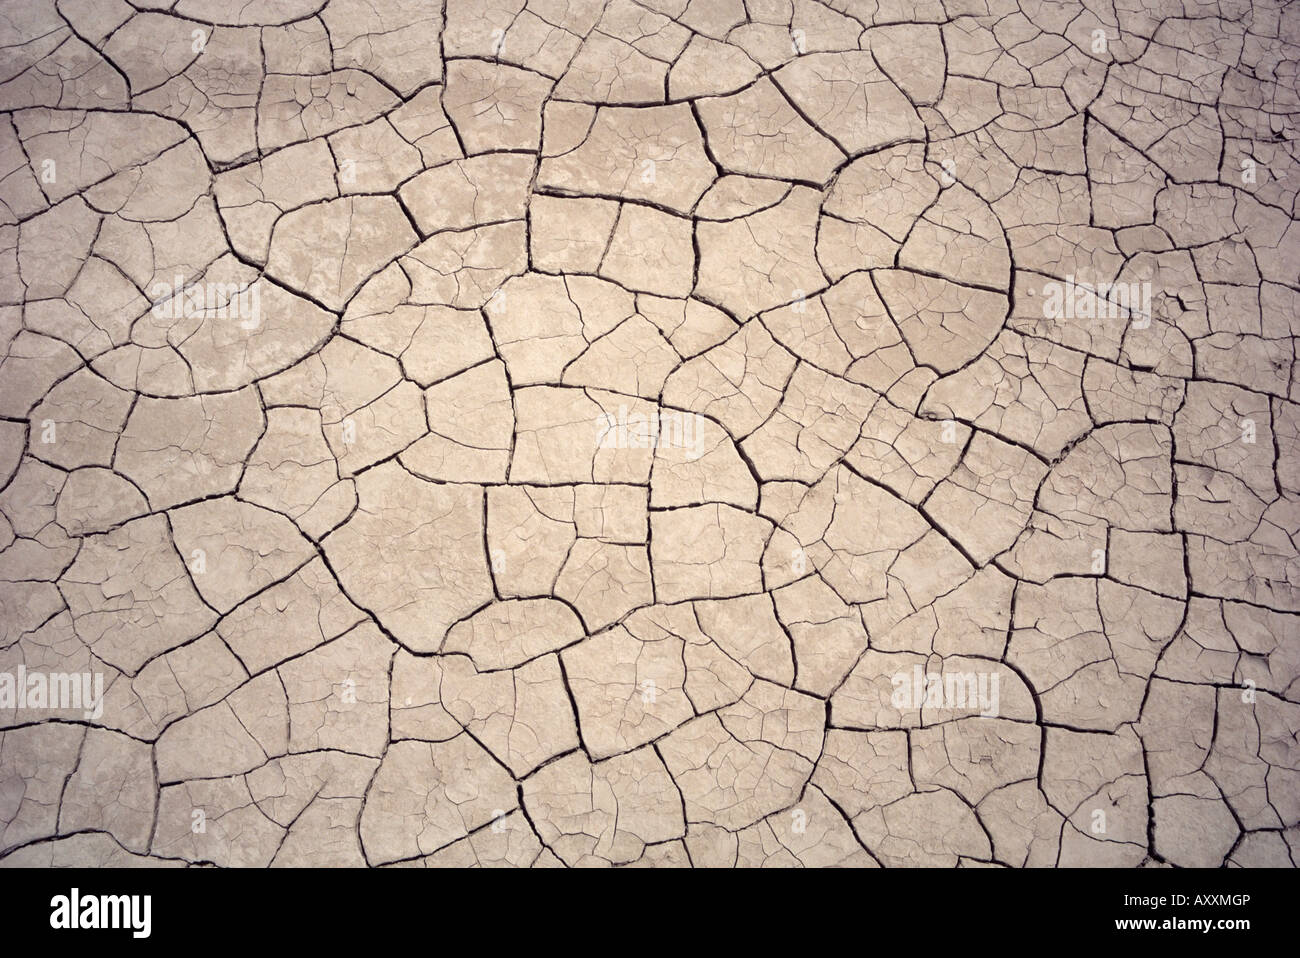 Patterns in mud cracks in drought area Stock Photo